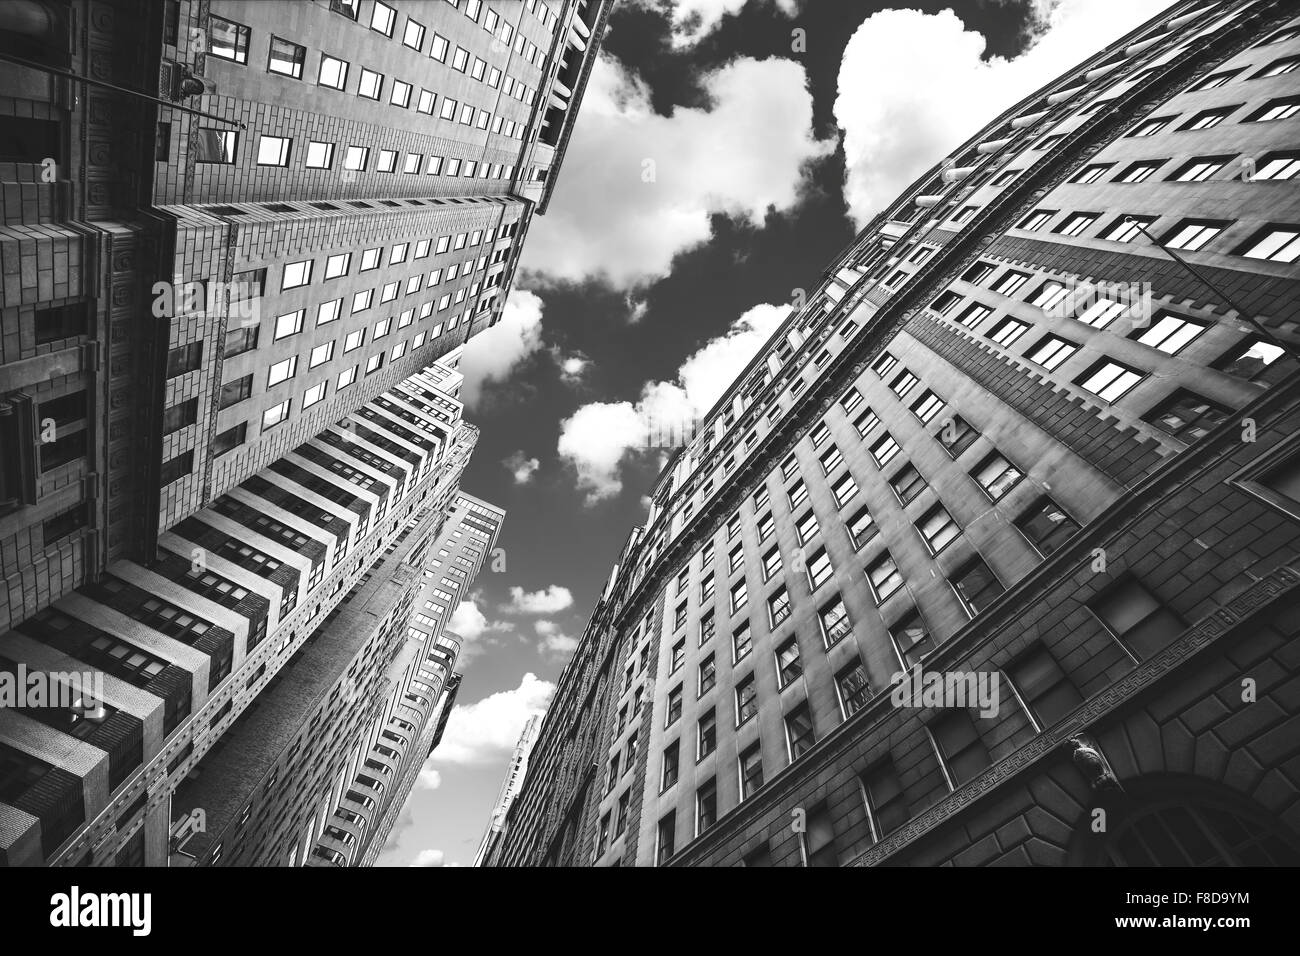 Black and white photo of buildings in Manhattan, NYC, USA. - Stock Image